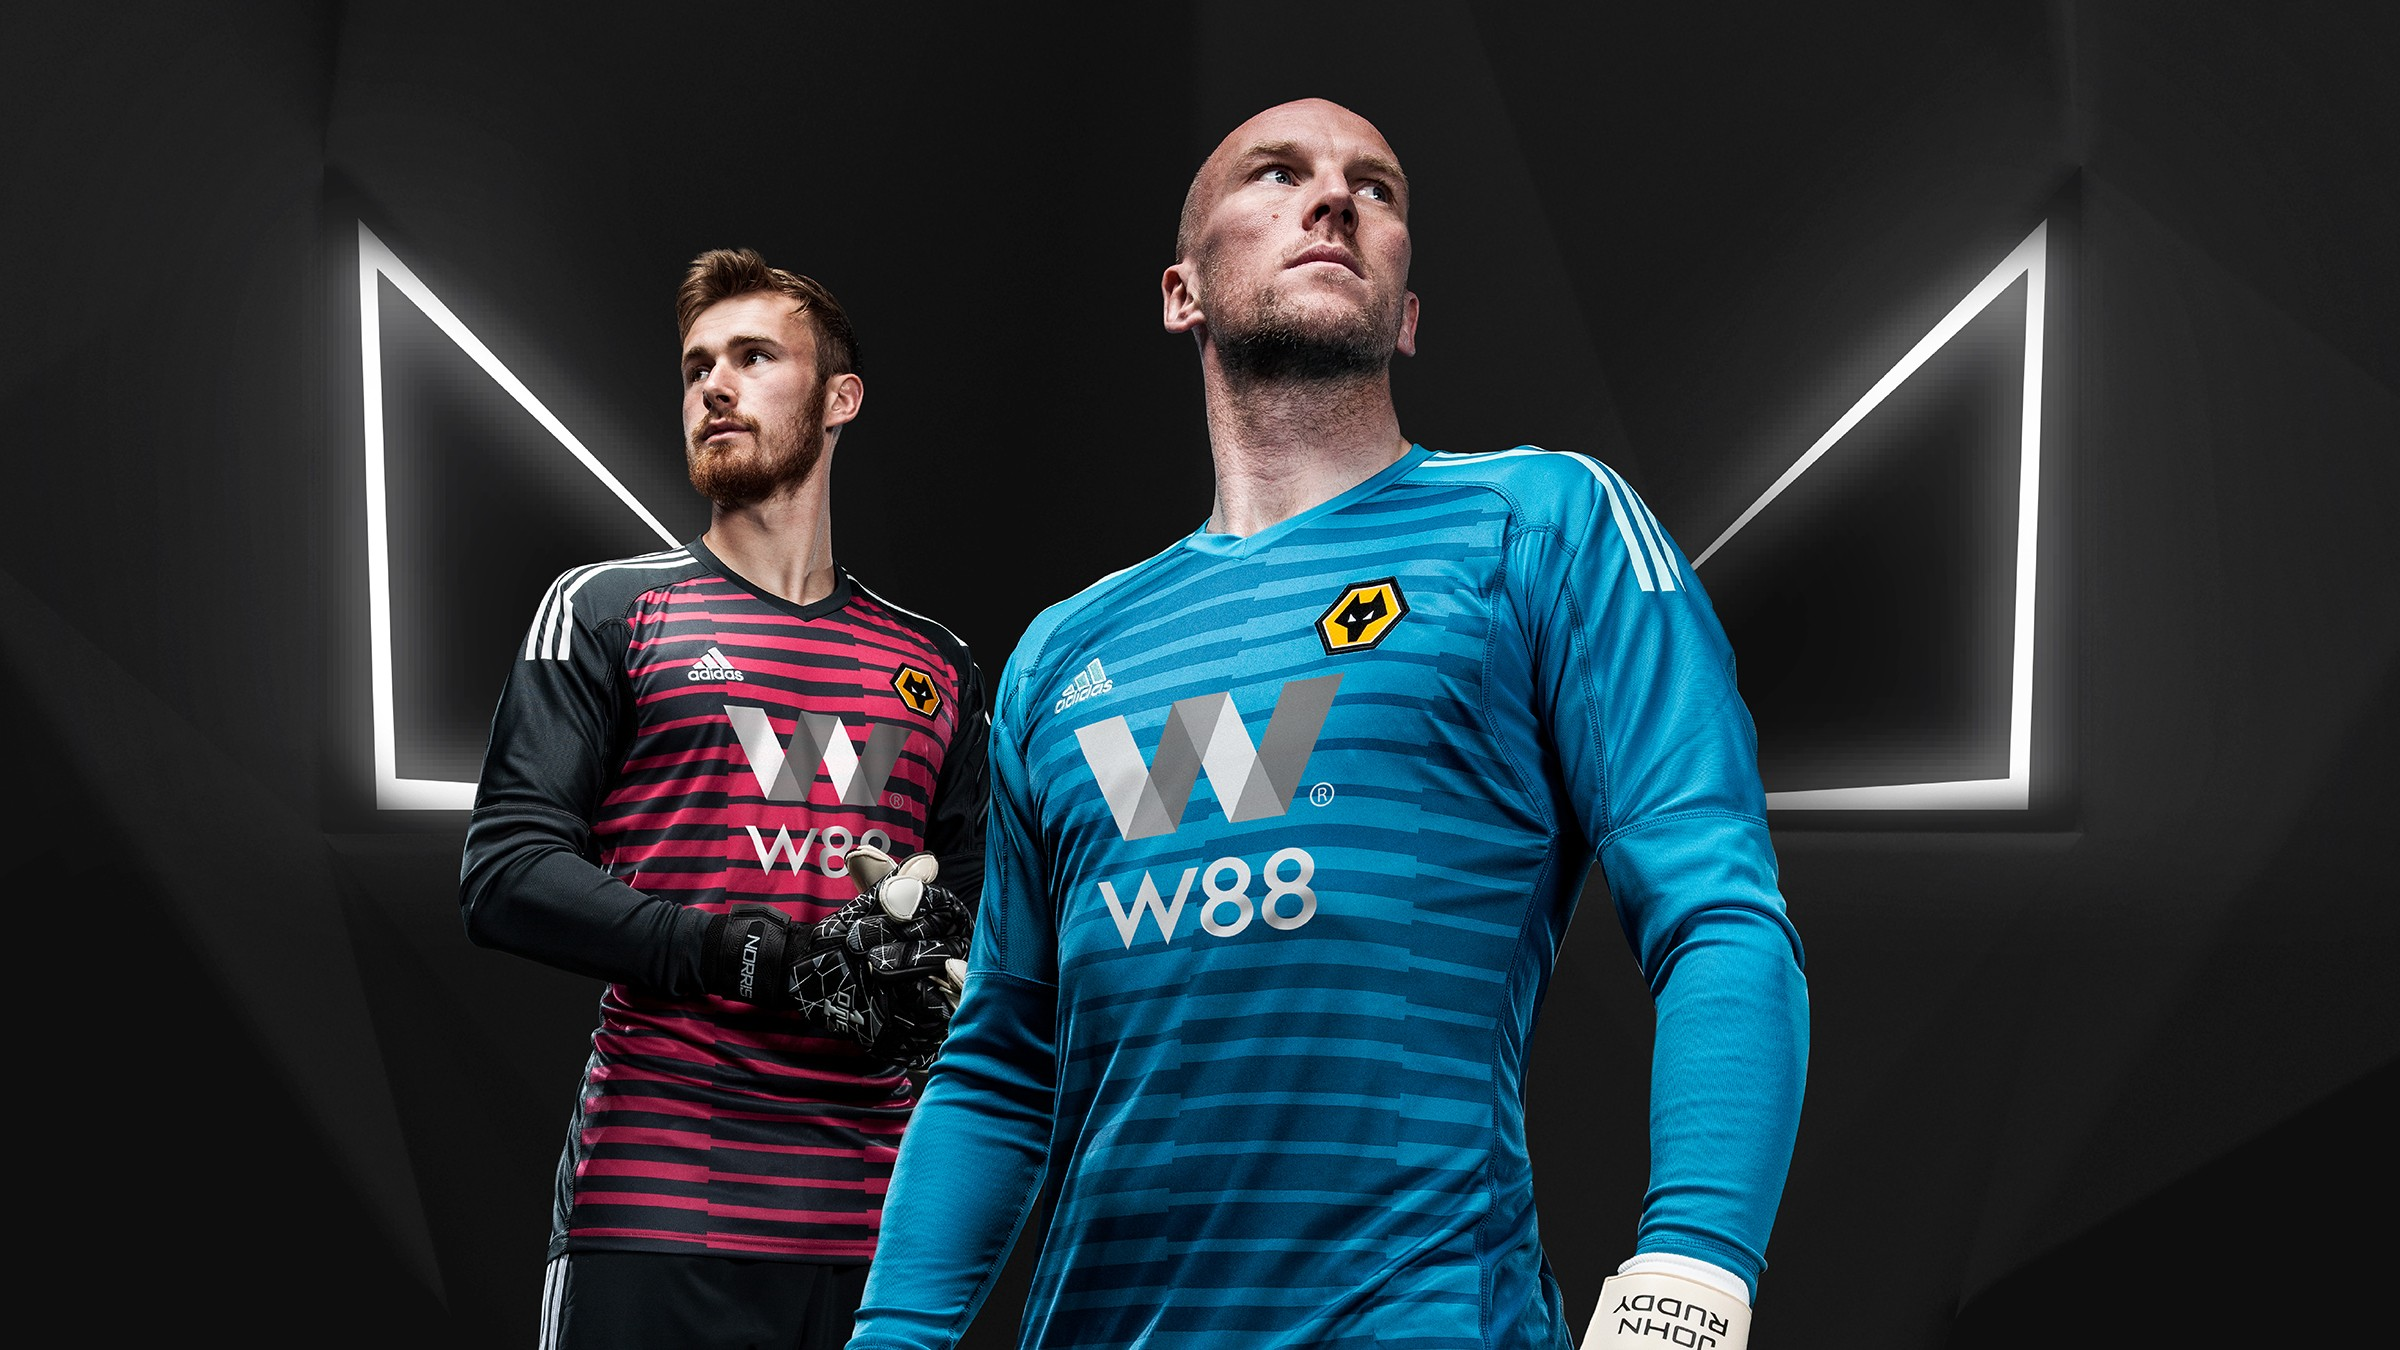 d915bcf6ee2 Official Store of Wolves FC | Wolverhampton Wanderers FC